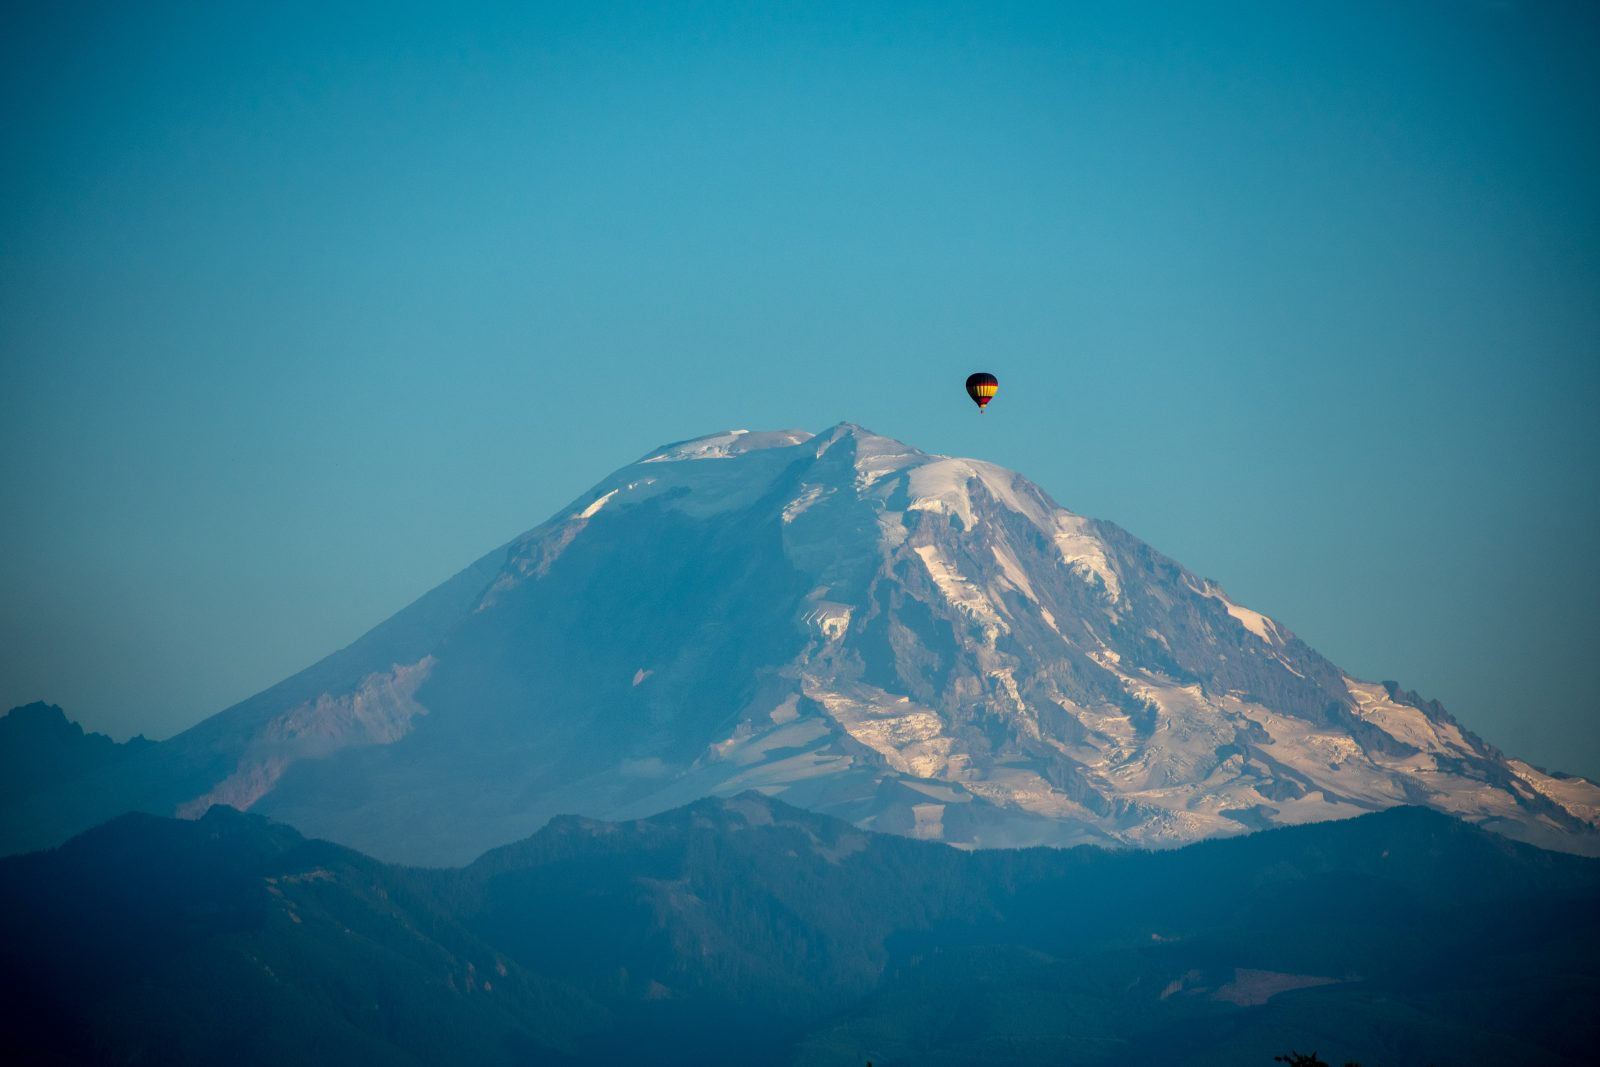 Rainier Mountain Balloon